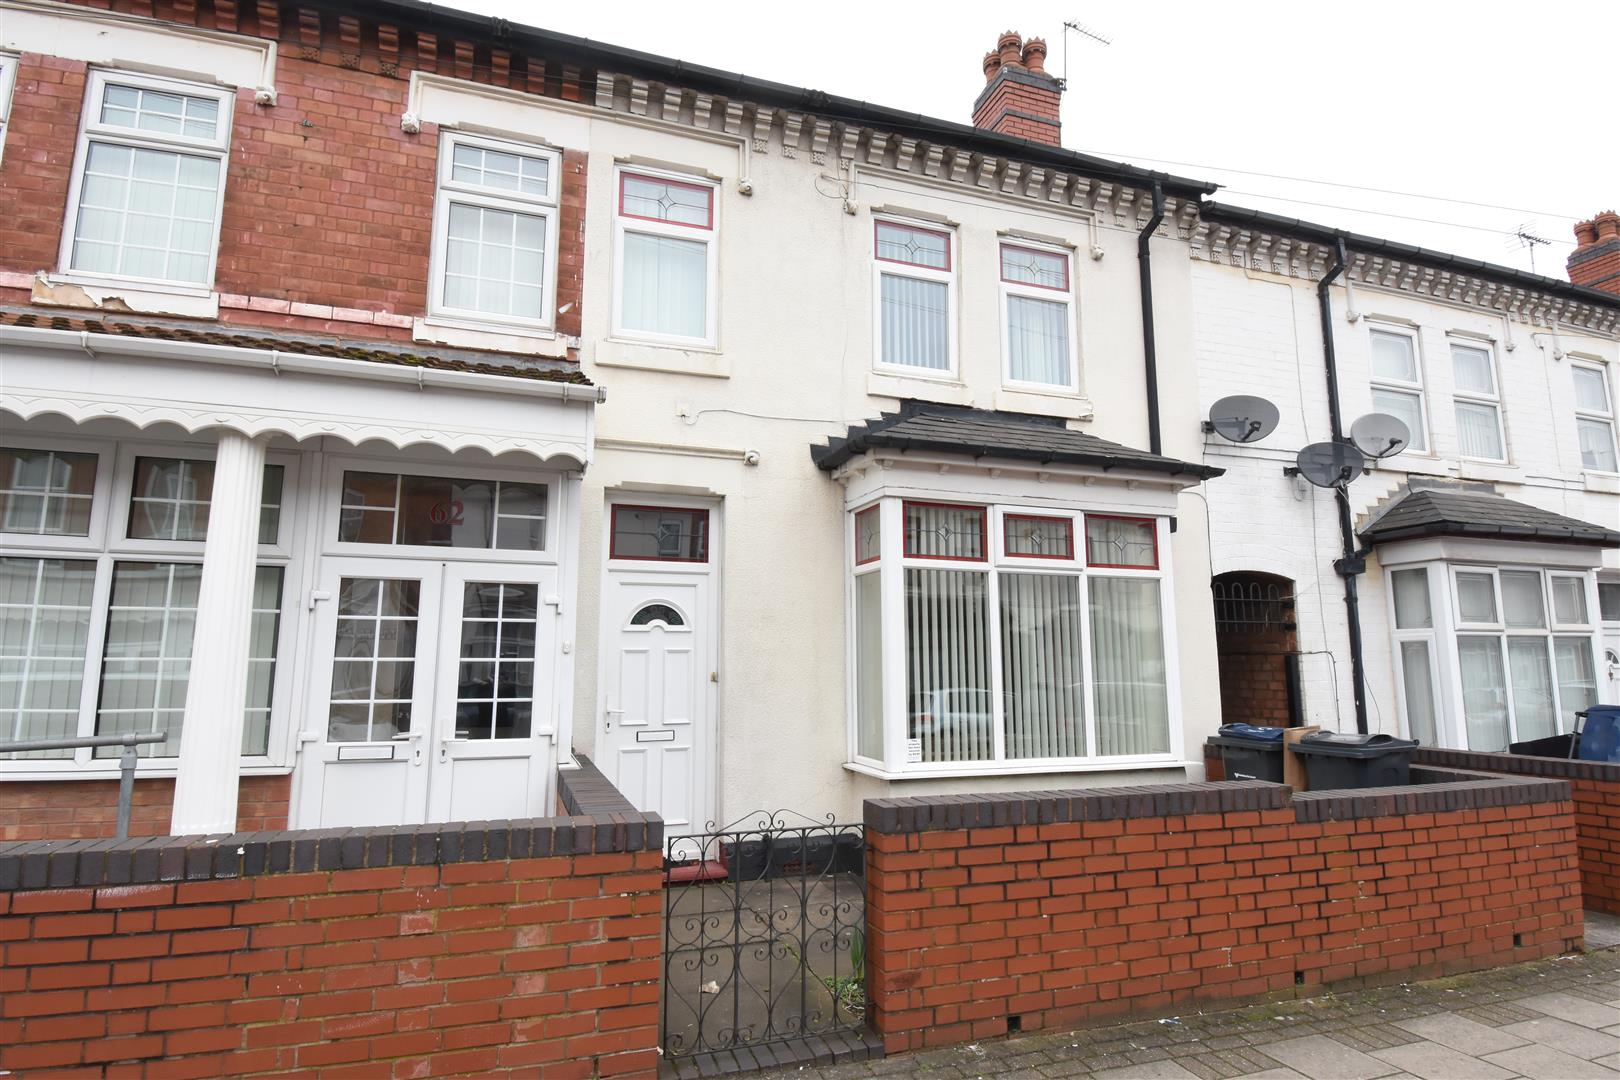 3 bed house for sale in Edmund Road, Alum Rock, Birmingham, B8